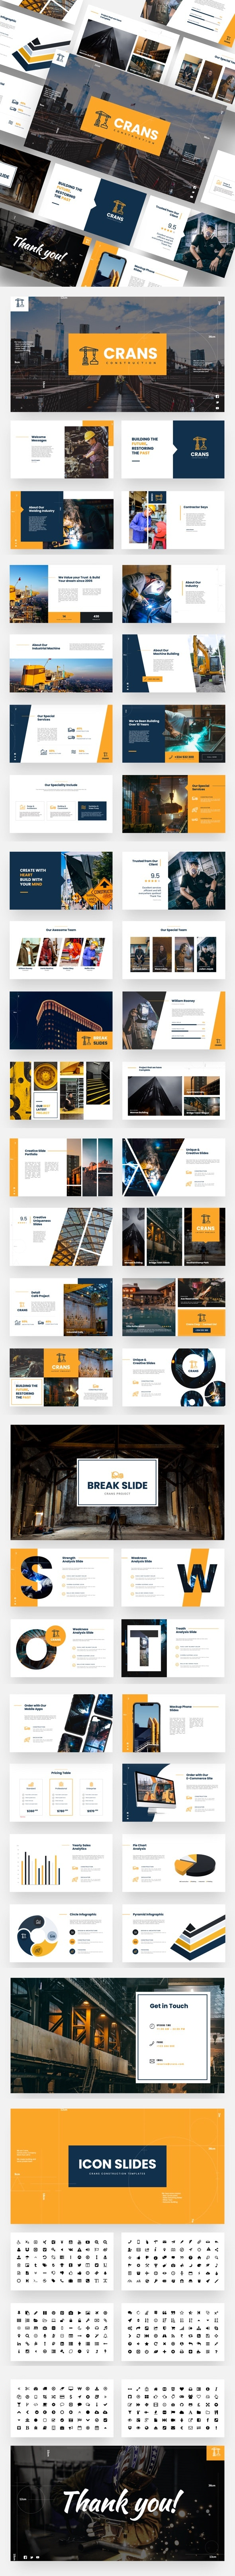 Crans - Construction & Industrial Keynote Template - Business Keynote Templates